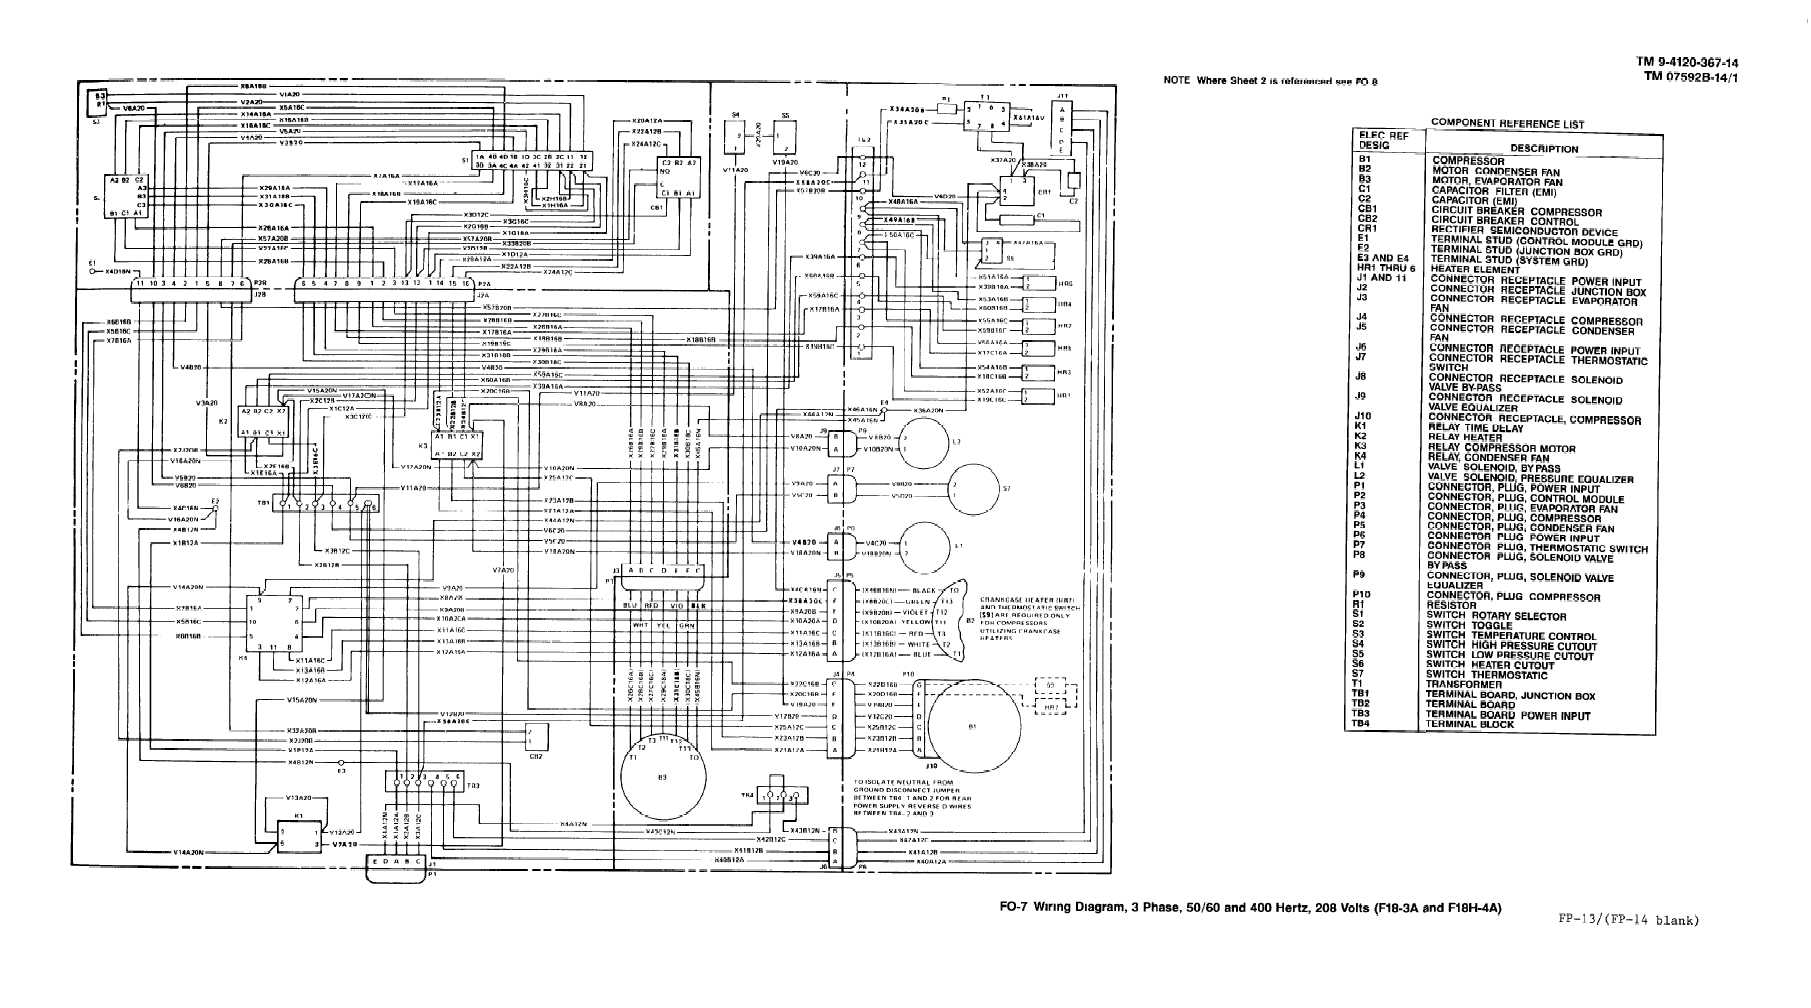 FO-7. Wiring Diagram, 3 Phase, 400 Hertz, 208 Volts (Model